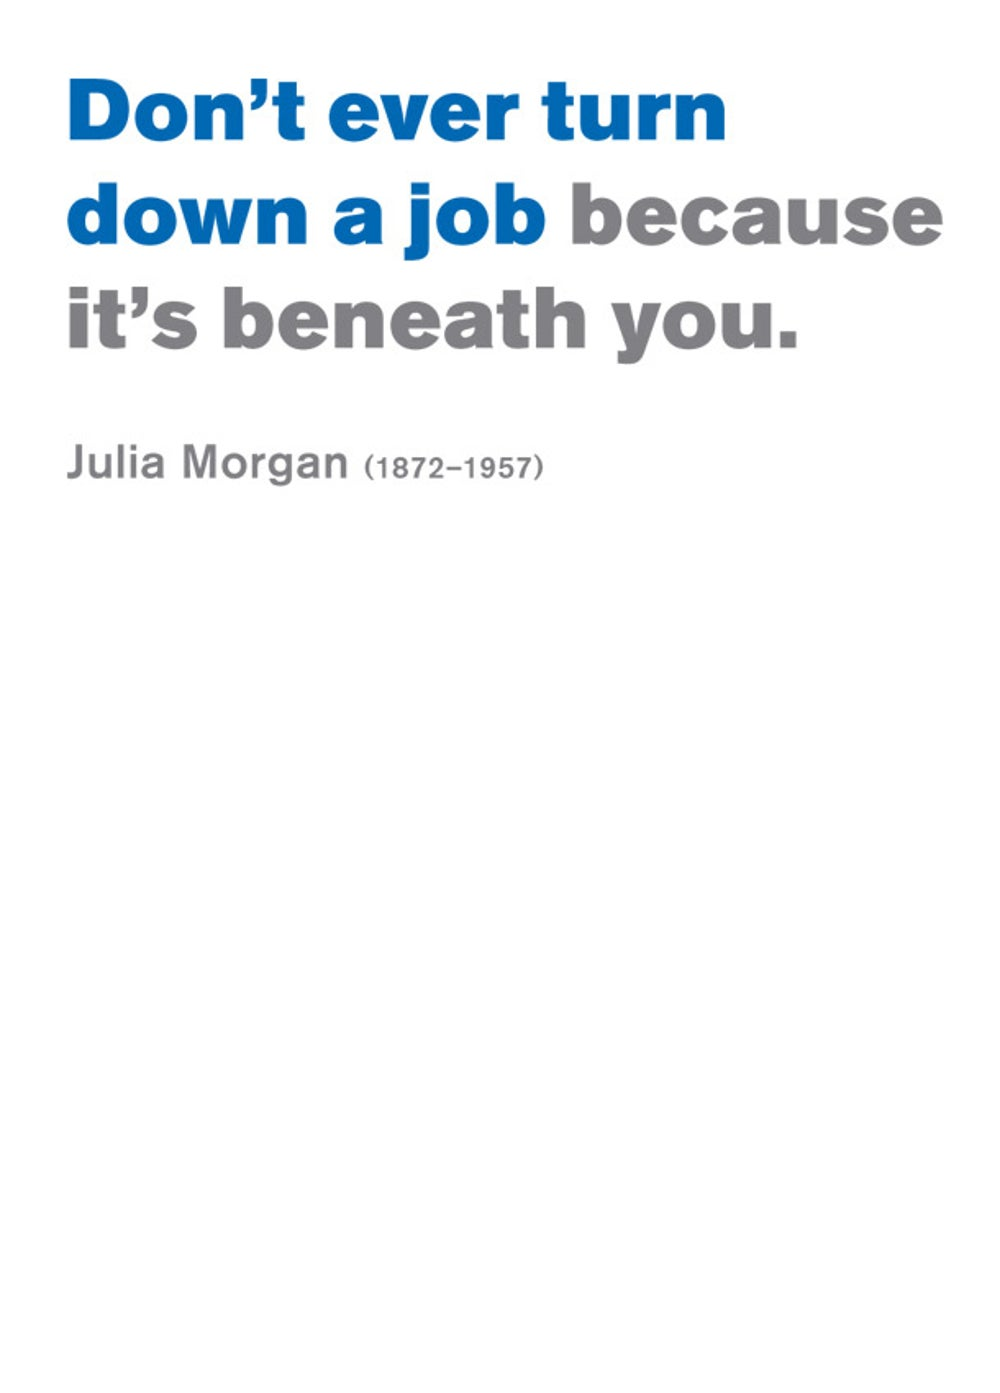 Julia Morgan on ego.